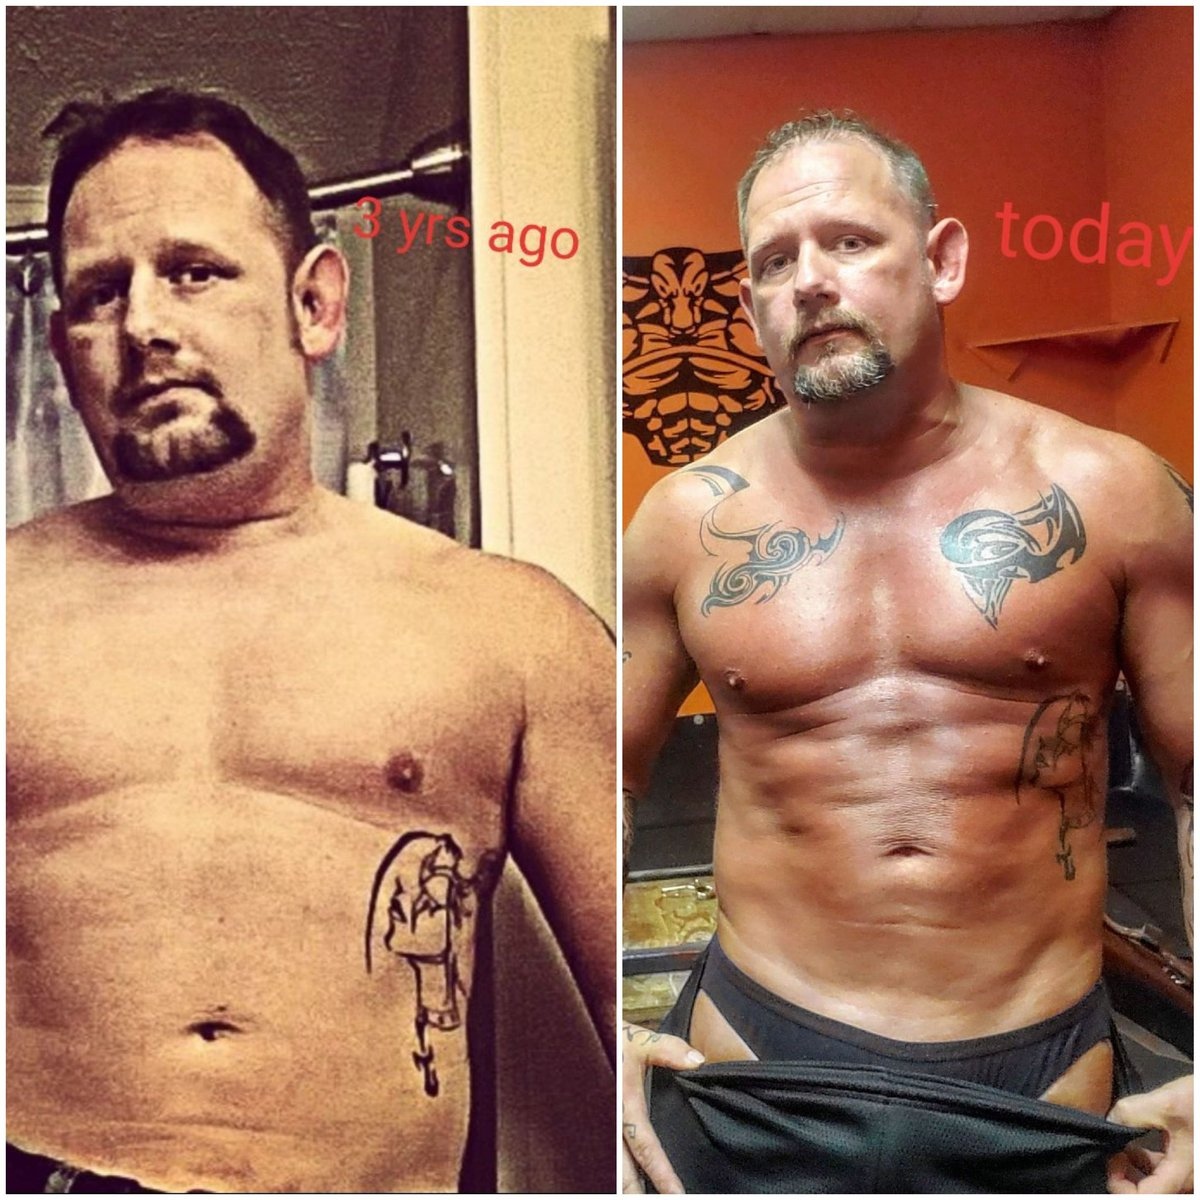 3yrs and today what a difference. #TransformationTuesday #fitness #fitover40 @MensHealthMag @menhealthystyle